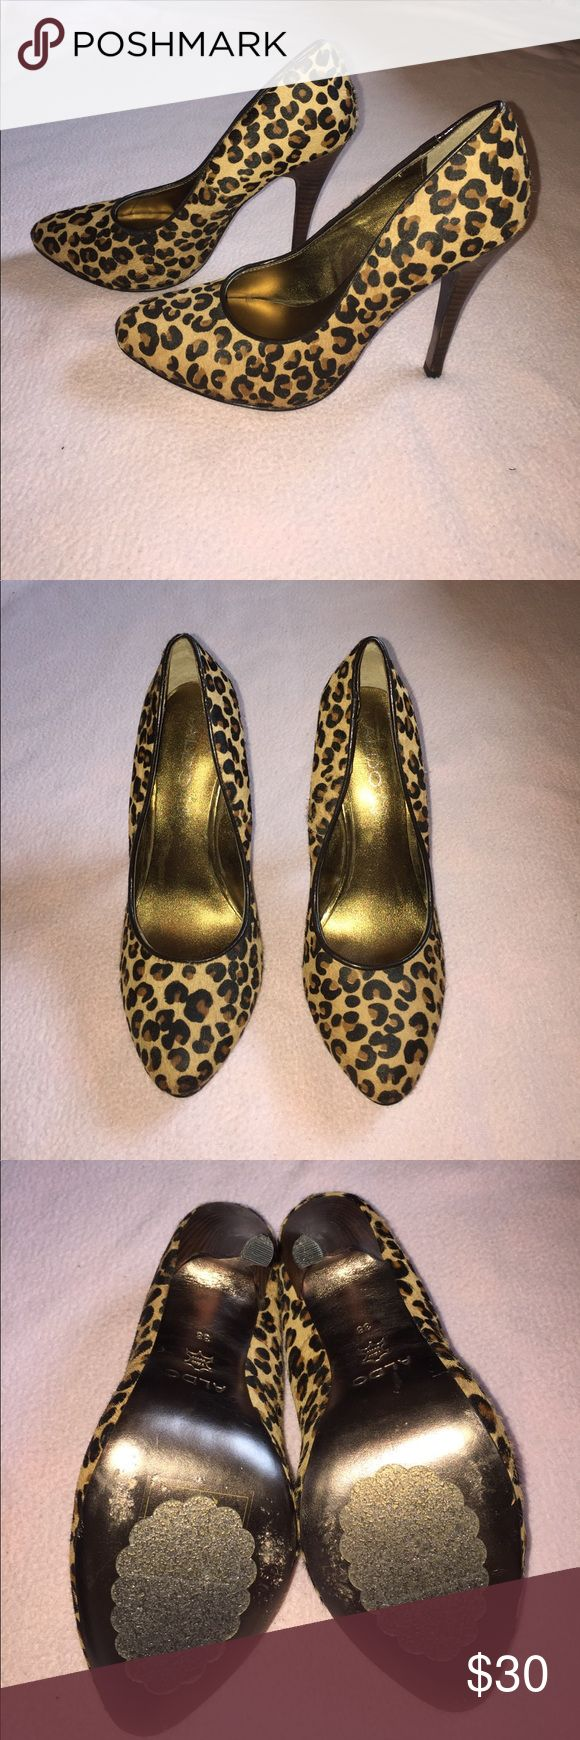 Aldo Leopard Pumps Sassy, fun, and cute, leopard print pumps! Can dress them up with a dress or more casual with a chambray button down! Gently used. Some of the little hairs on the shoes stick up, but they were like that when I got them. They are in good condition. Aldo Shoes Heels